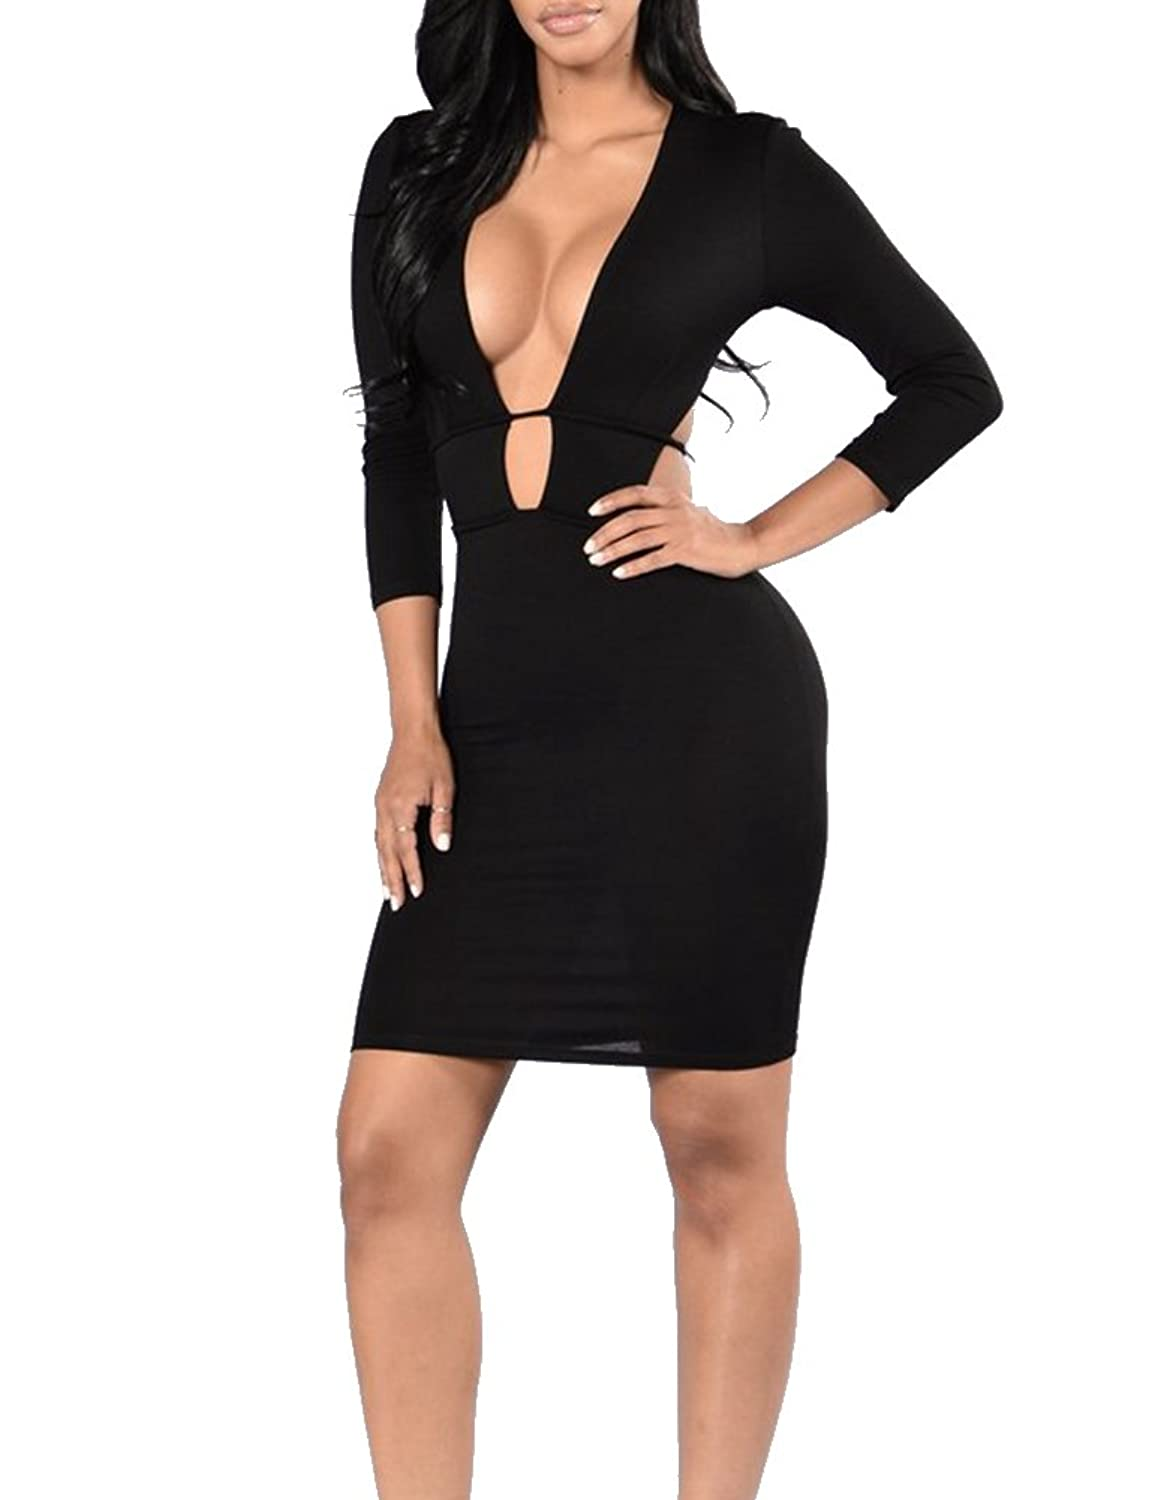 Women Sexy Deep V Neck 3/4 Sleeve Hollow Out Bodycon Clubwear Party Mini Dress